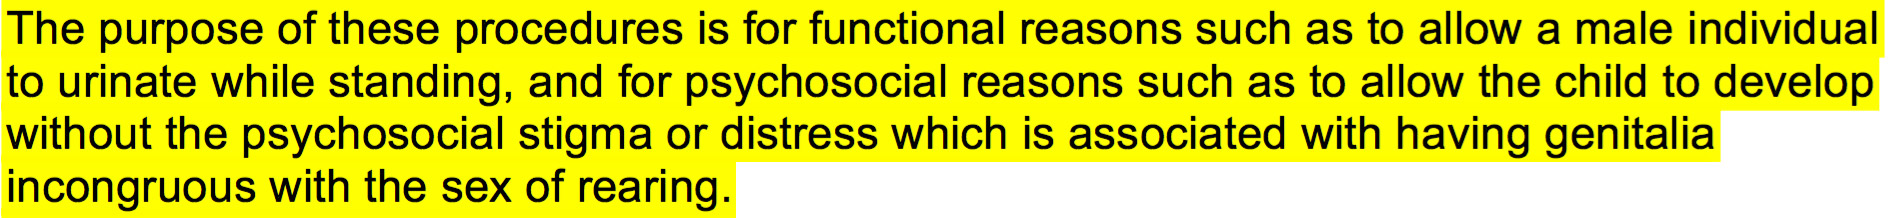 Psychosocial reasons